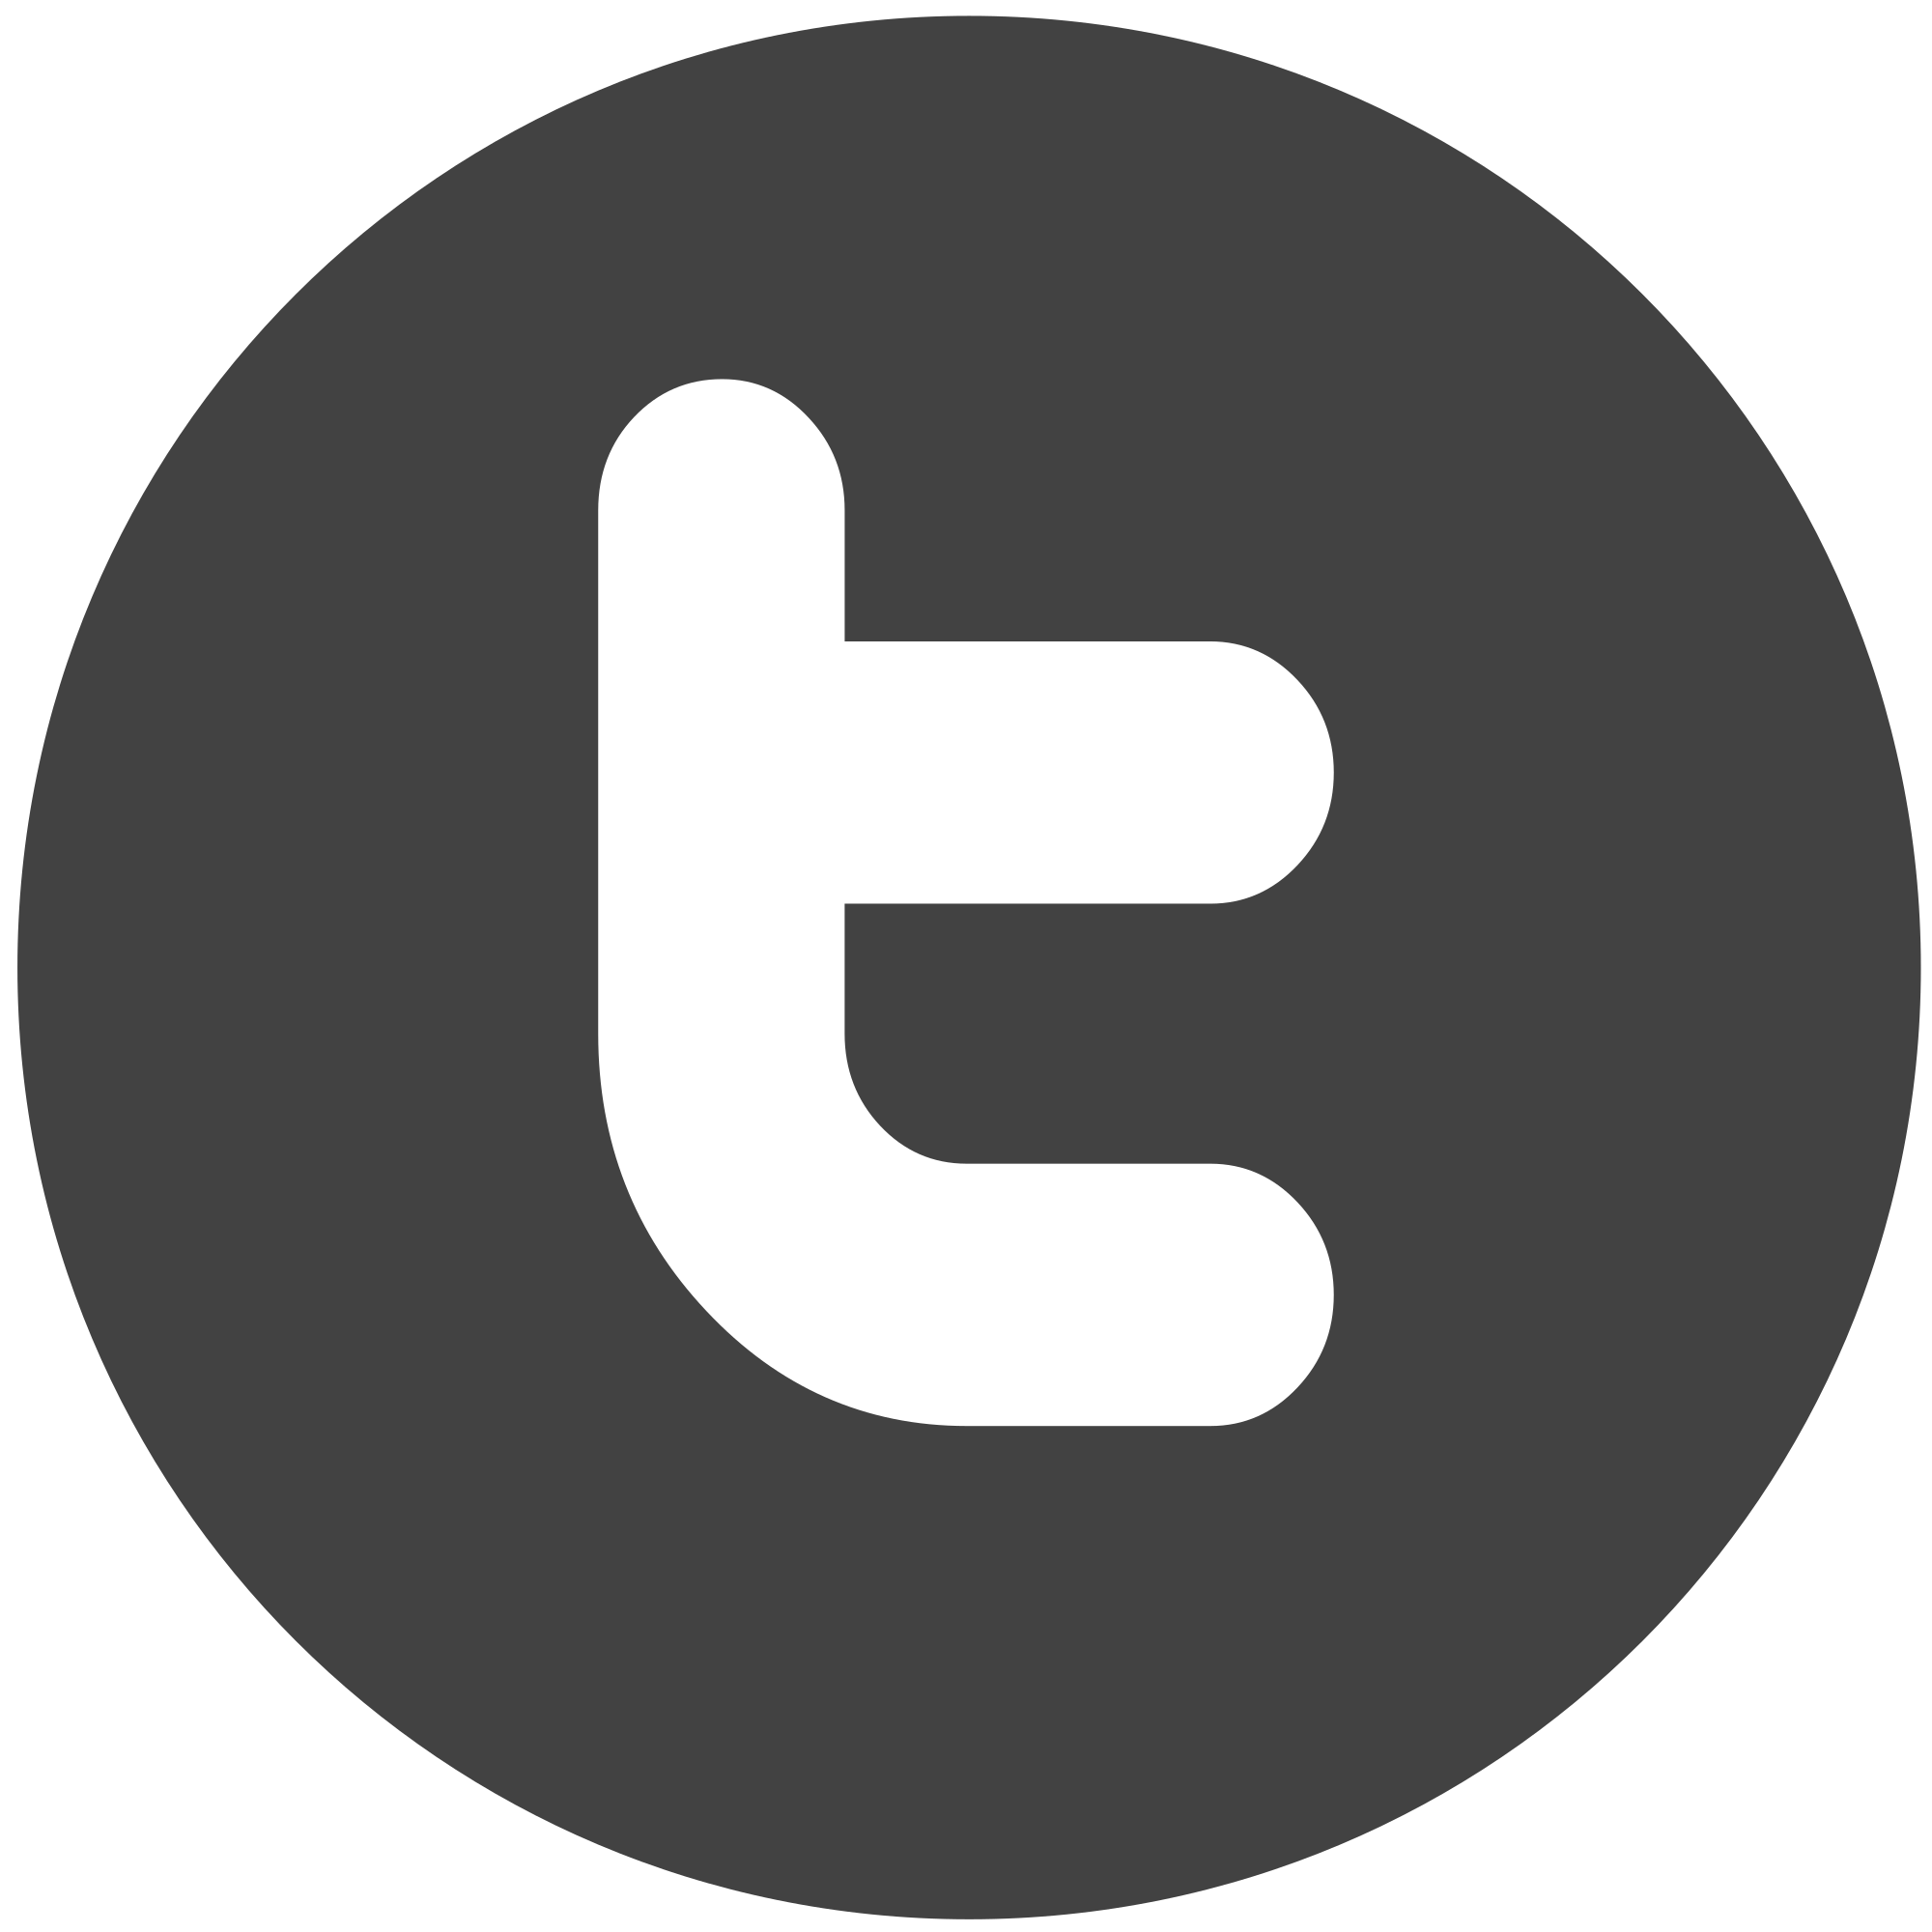 Jpg black and white. Twitter circle icon png